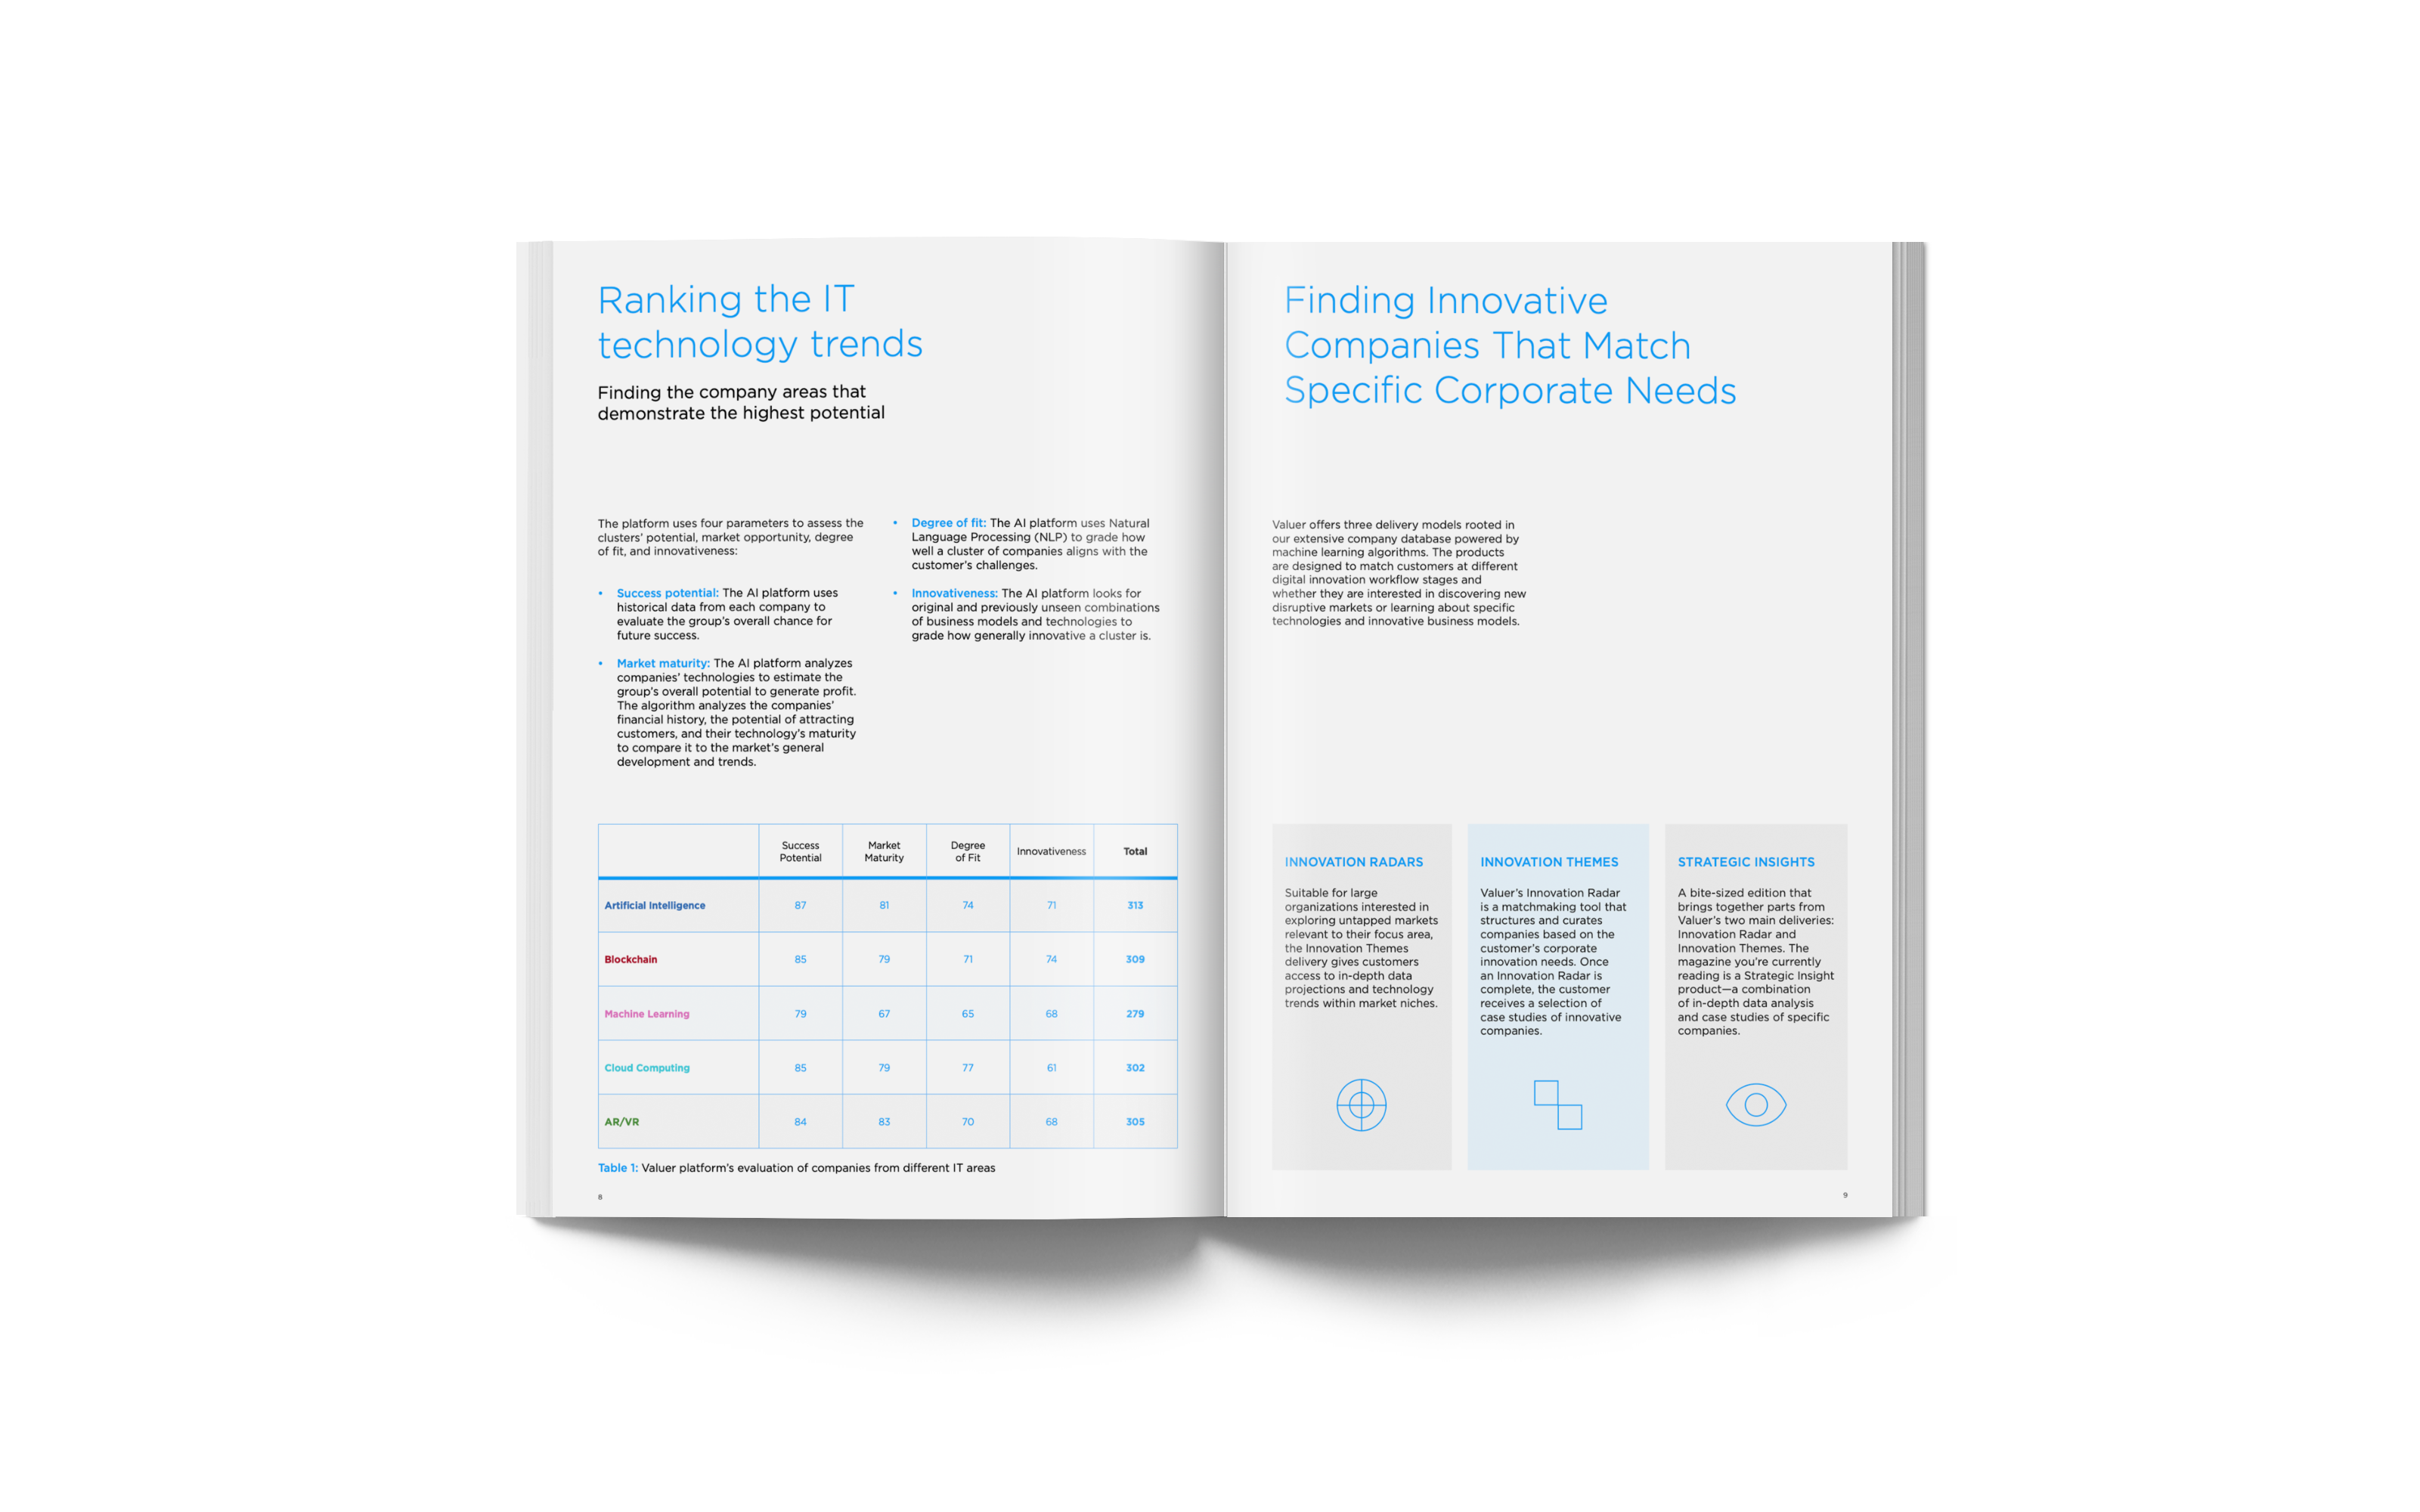 Look Inside at ranking it technology trends